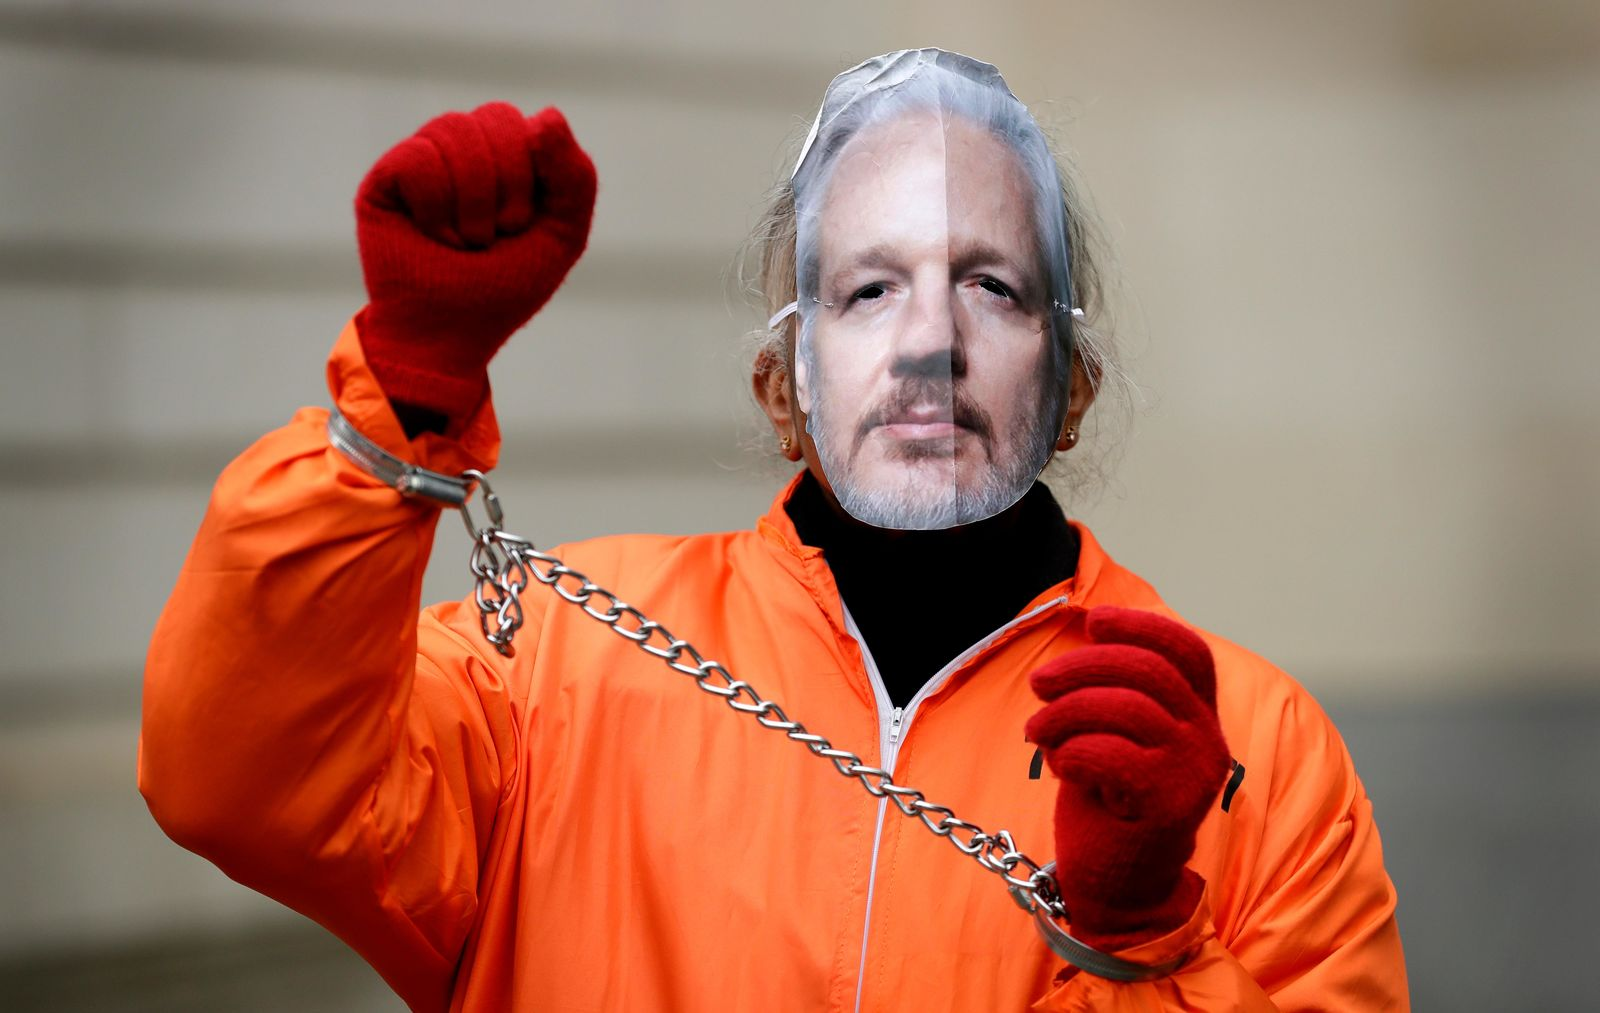 A demonstrator supporting Julian Assange wears a mask and chains outside Westminster Magistrates Court in London, Thursday, Jan. 23, 2020.{ } (AP Photo/Kirsty Wigglesworth)